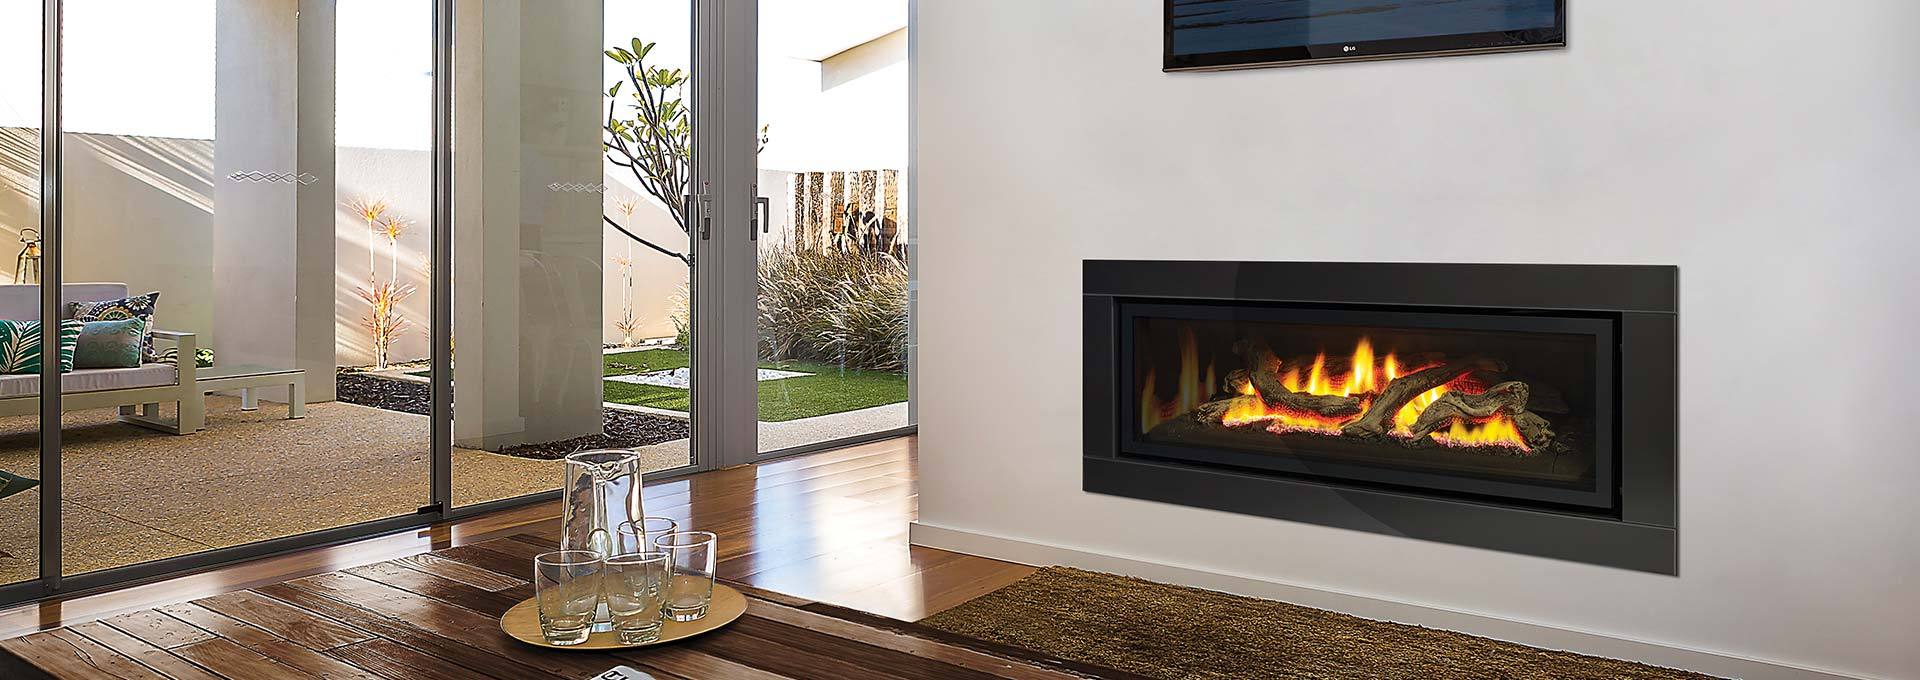 contemporary gas fireplaces regency fireplace products rh regency fire com contemporary horizontal gas fireplaces contemporary horizontal gas fireplaces